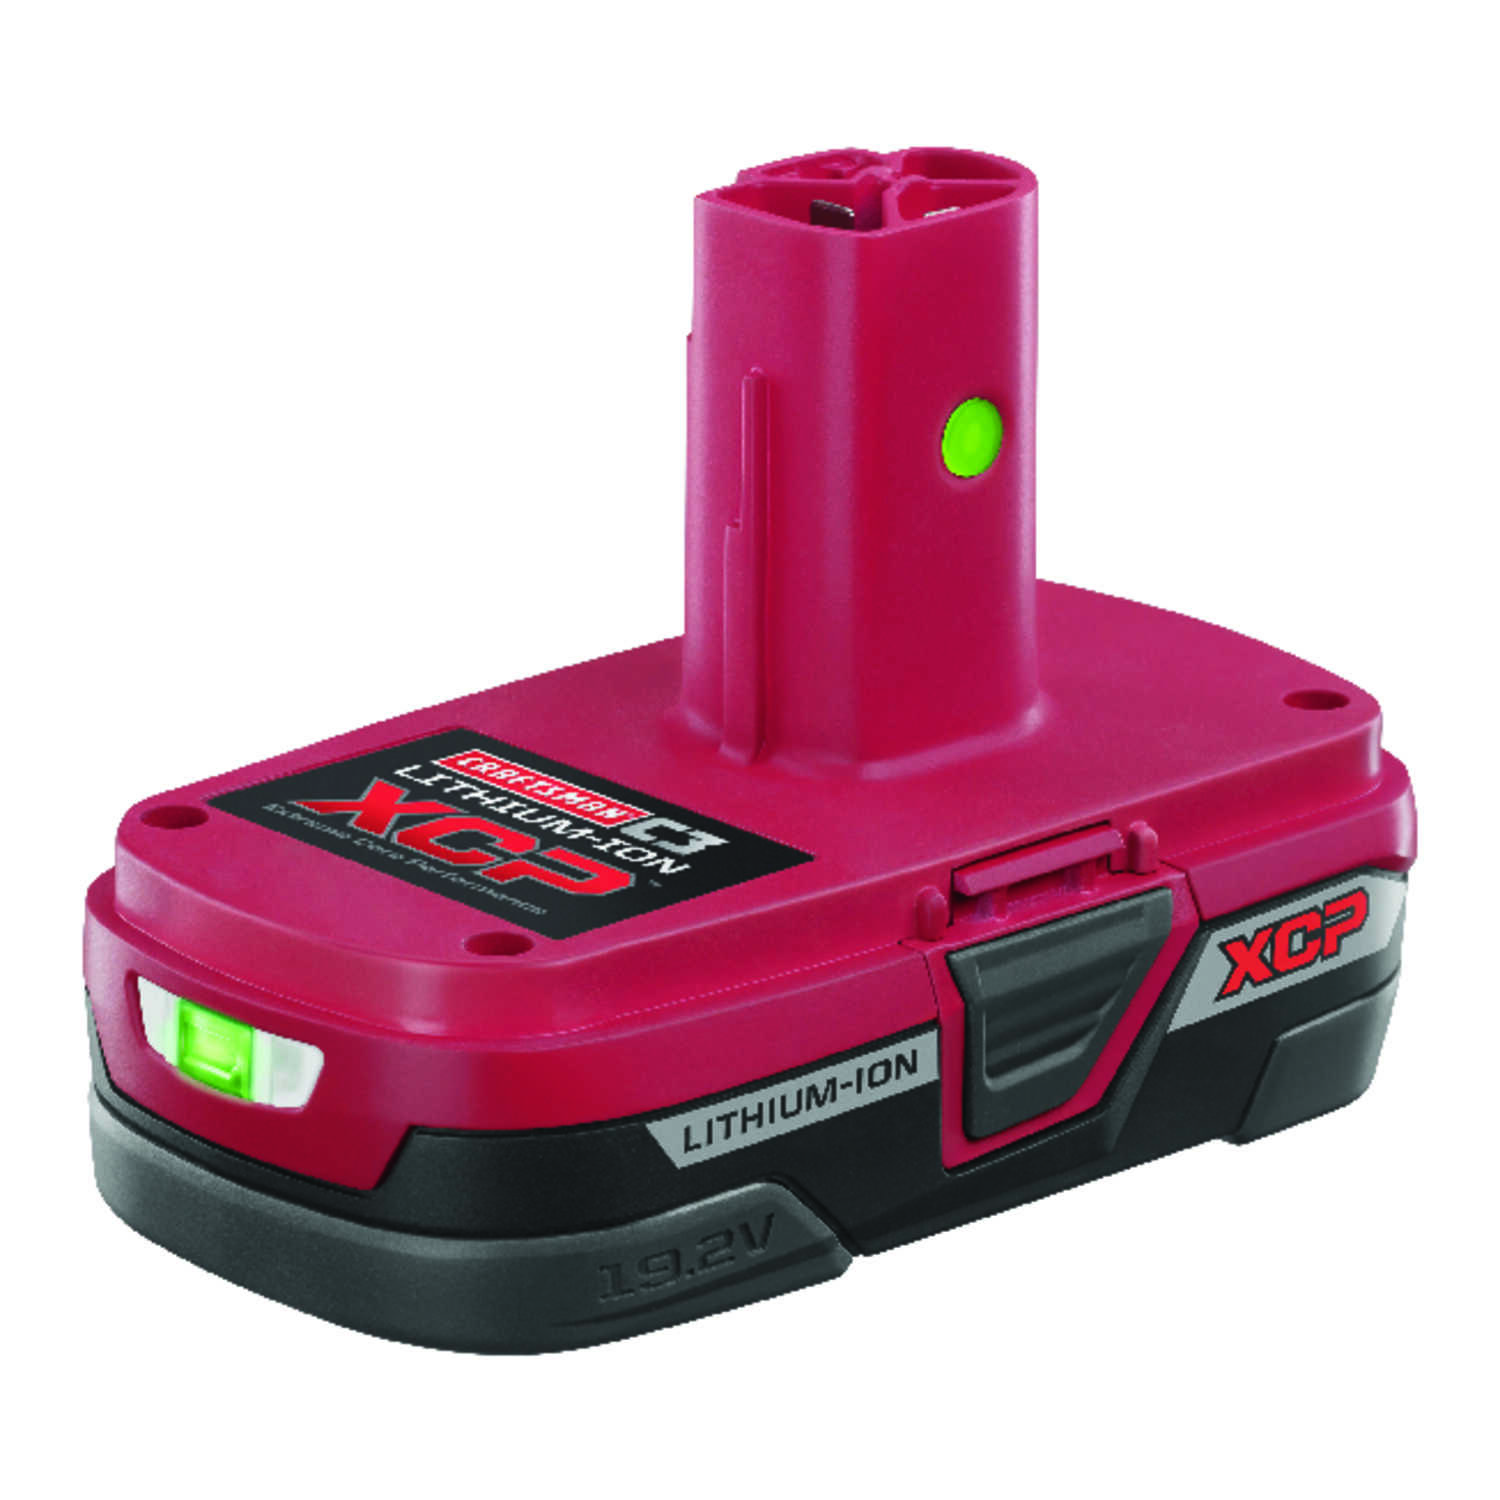 Craftsman  C3 XCP  19.2 volt Lithium-Ion  1.5 Ah 1 pc. Compact Battery Pack